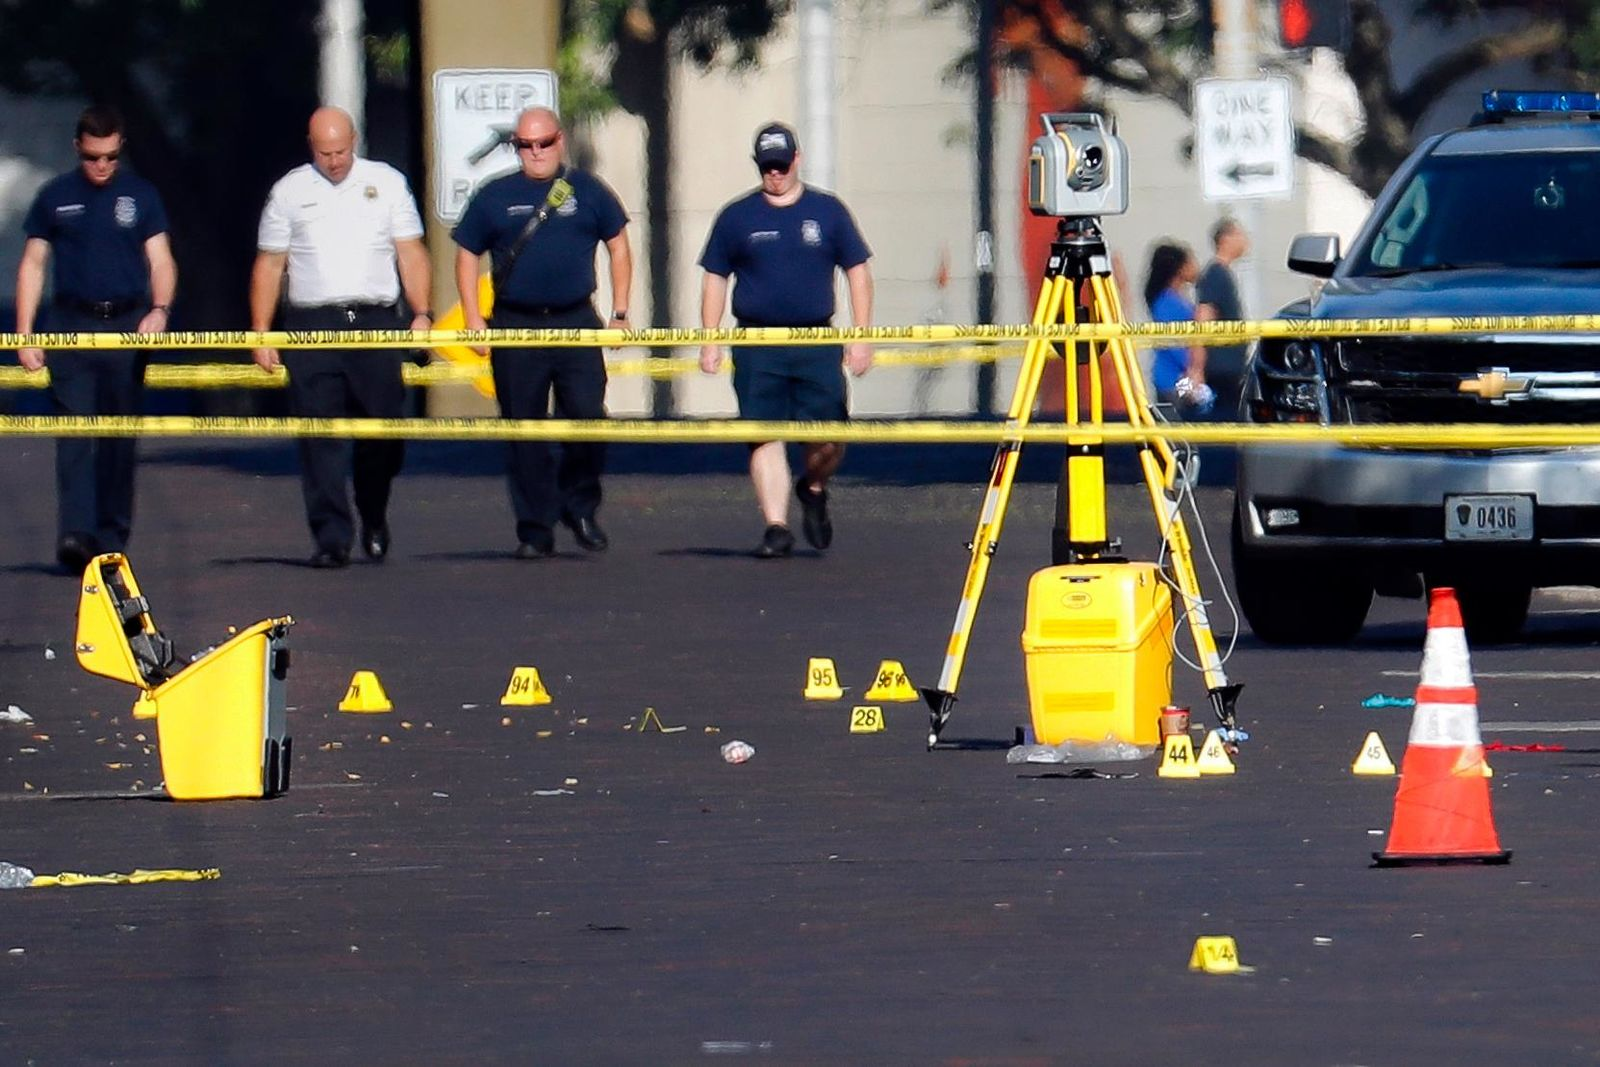 Evidence markers rest on the street at the scene of a mass shooting Sunday, Aug. 4, 2019, in Dayton, Ohio. Several people in Ohio have been killed in the second mass shooting in the U.S. in less than 24 hours, and the suspected shooter is also deceased, police said. (AP Photo/John Minchillo)